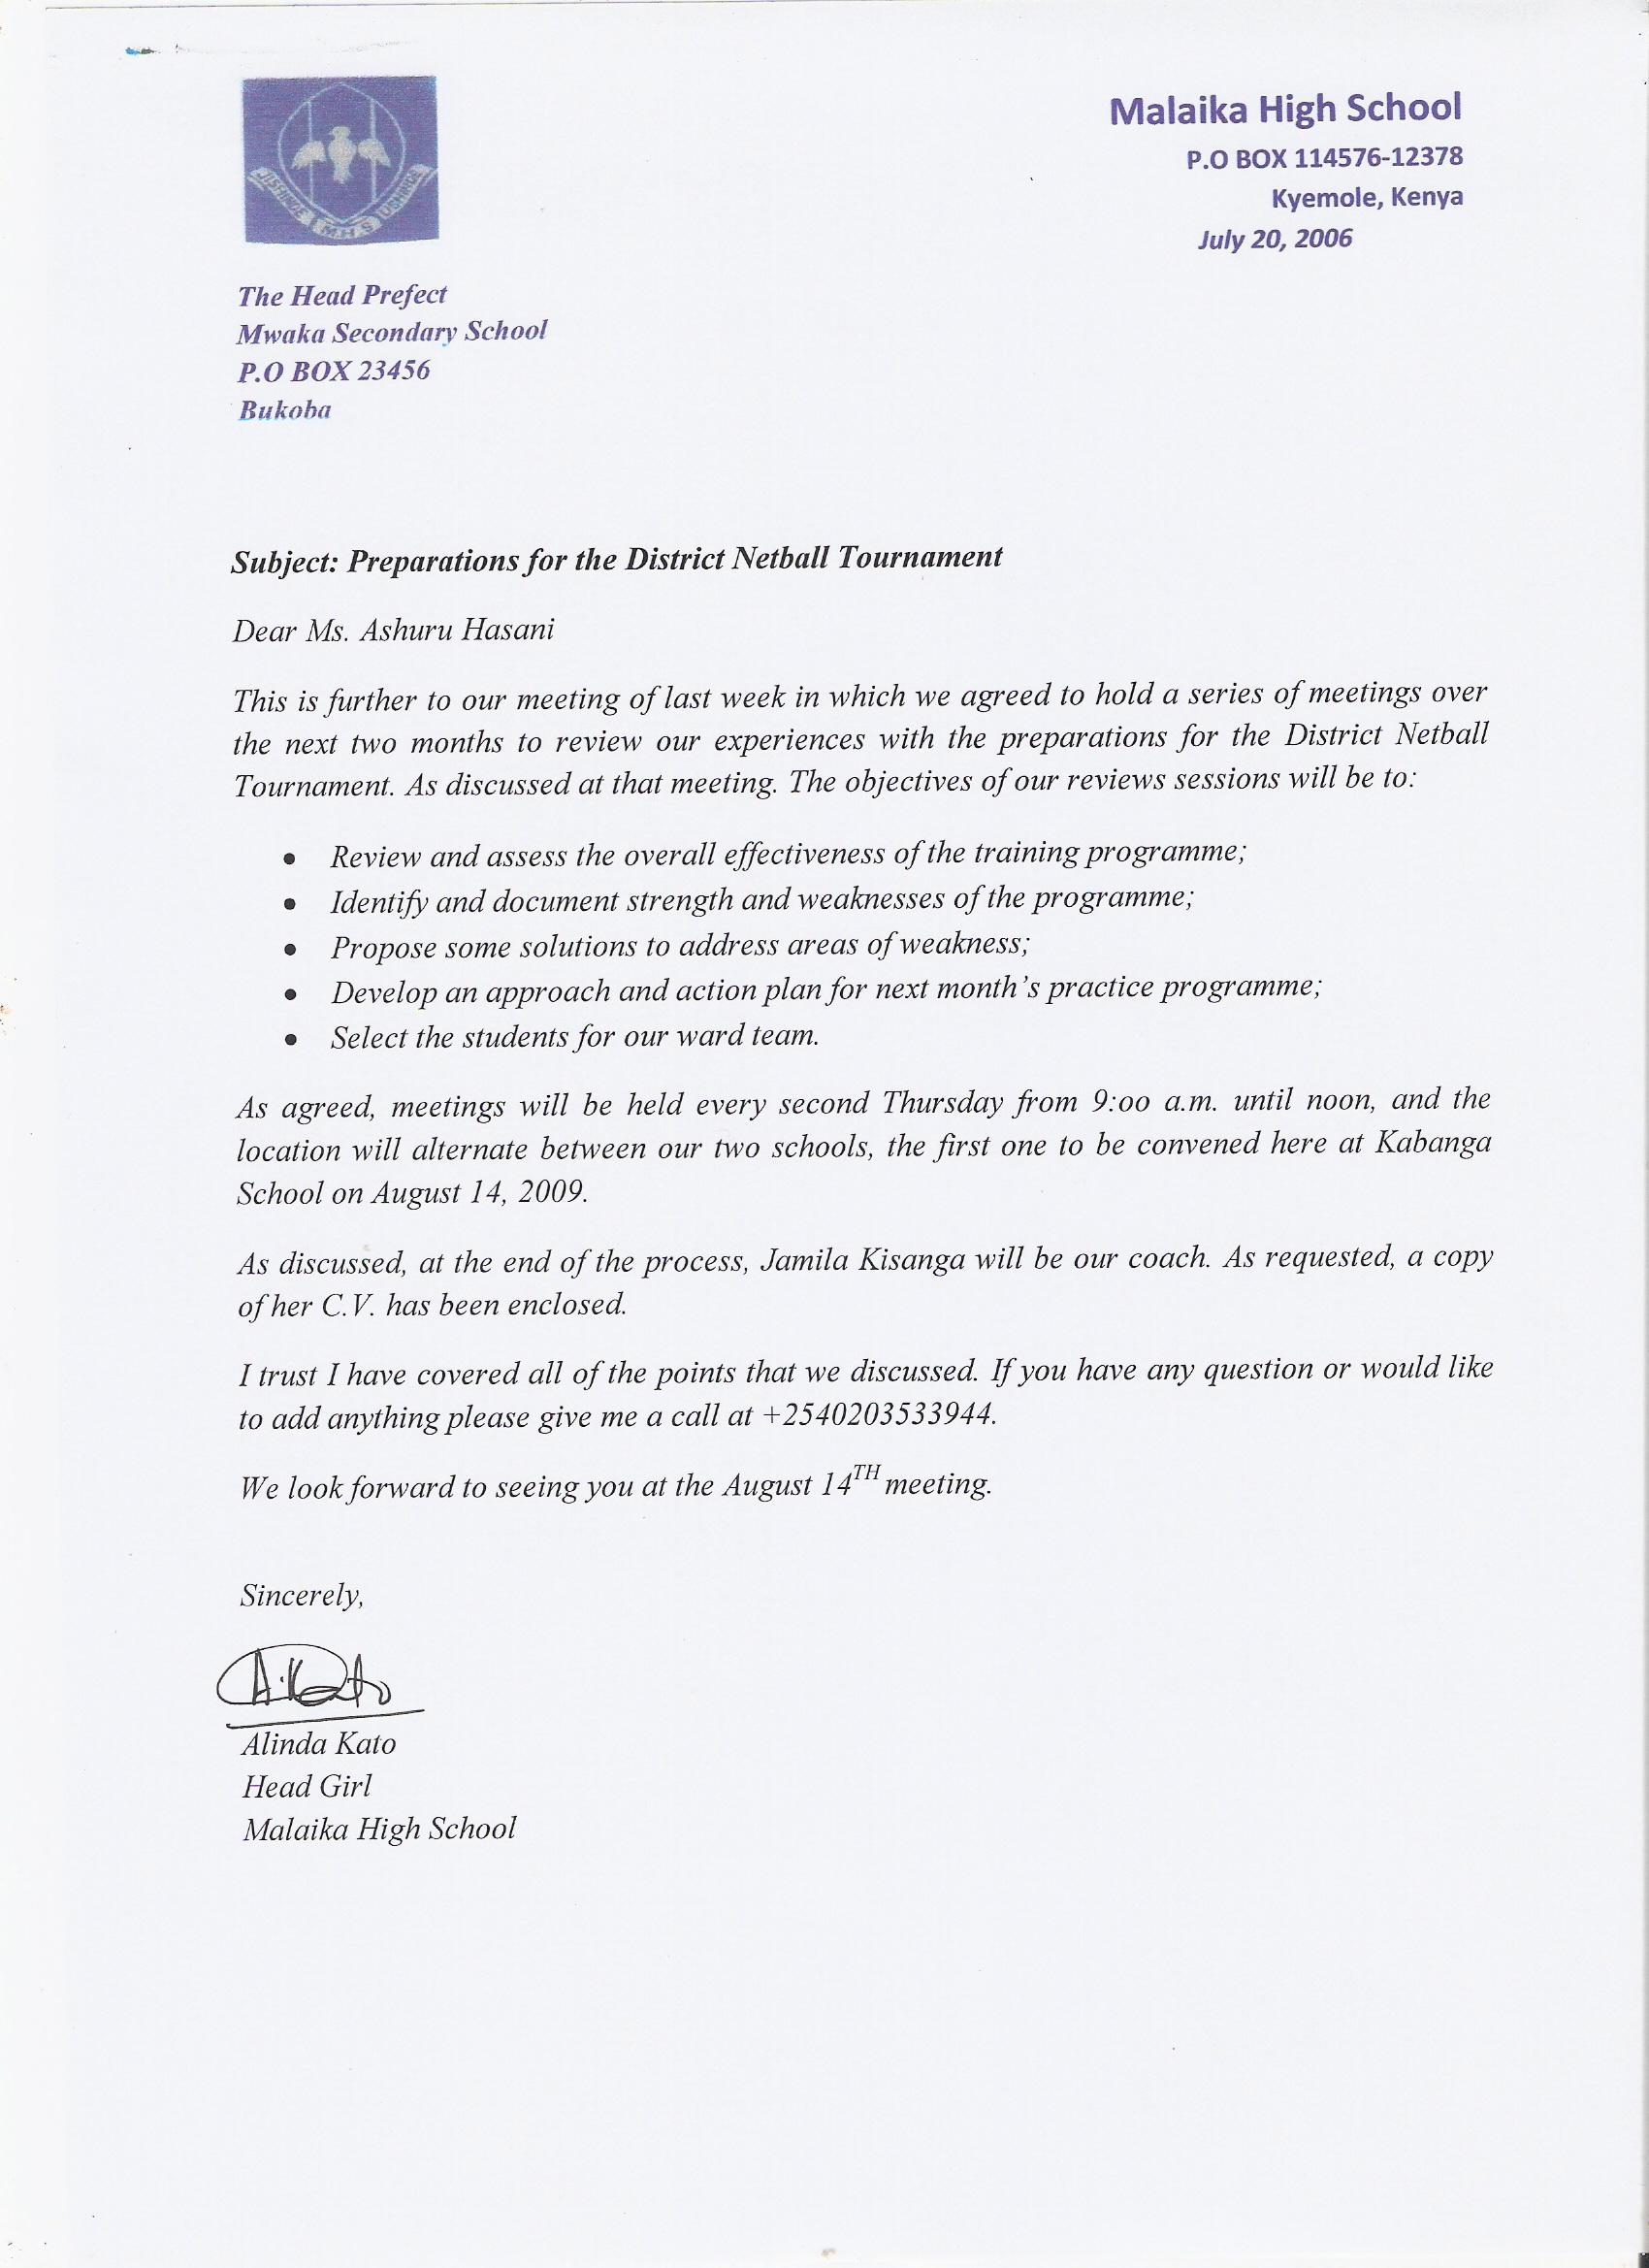 Sample Business Letter Format Format Of A Business Letter Business